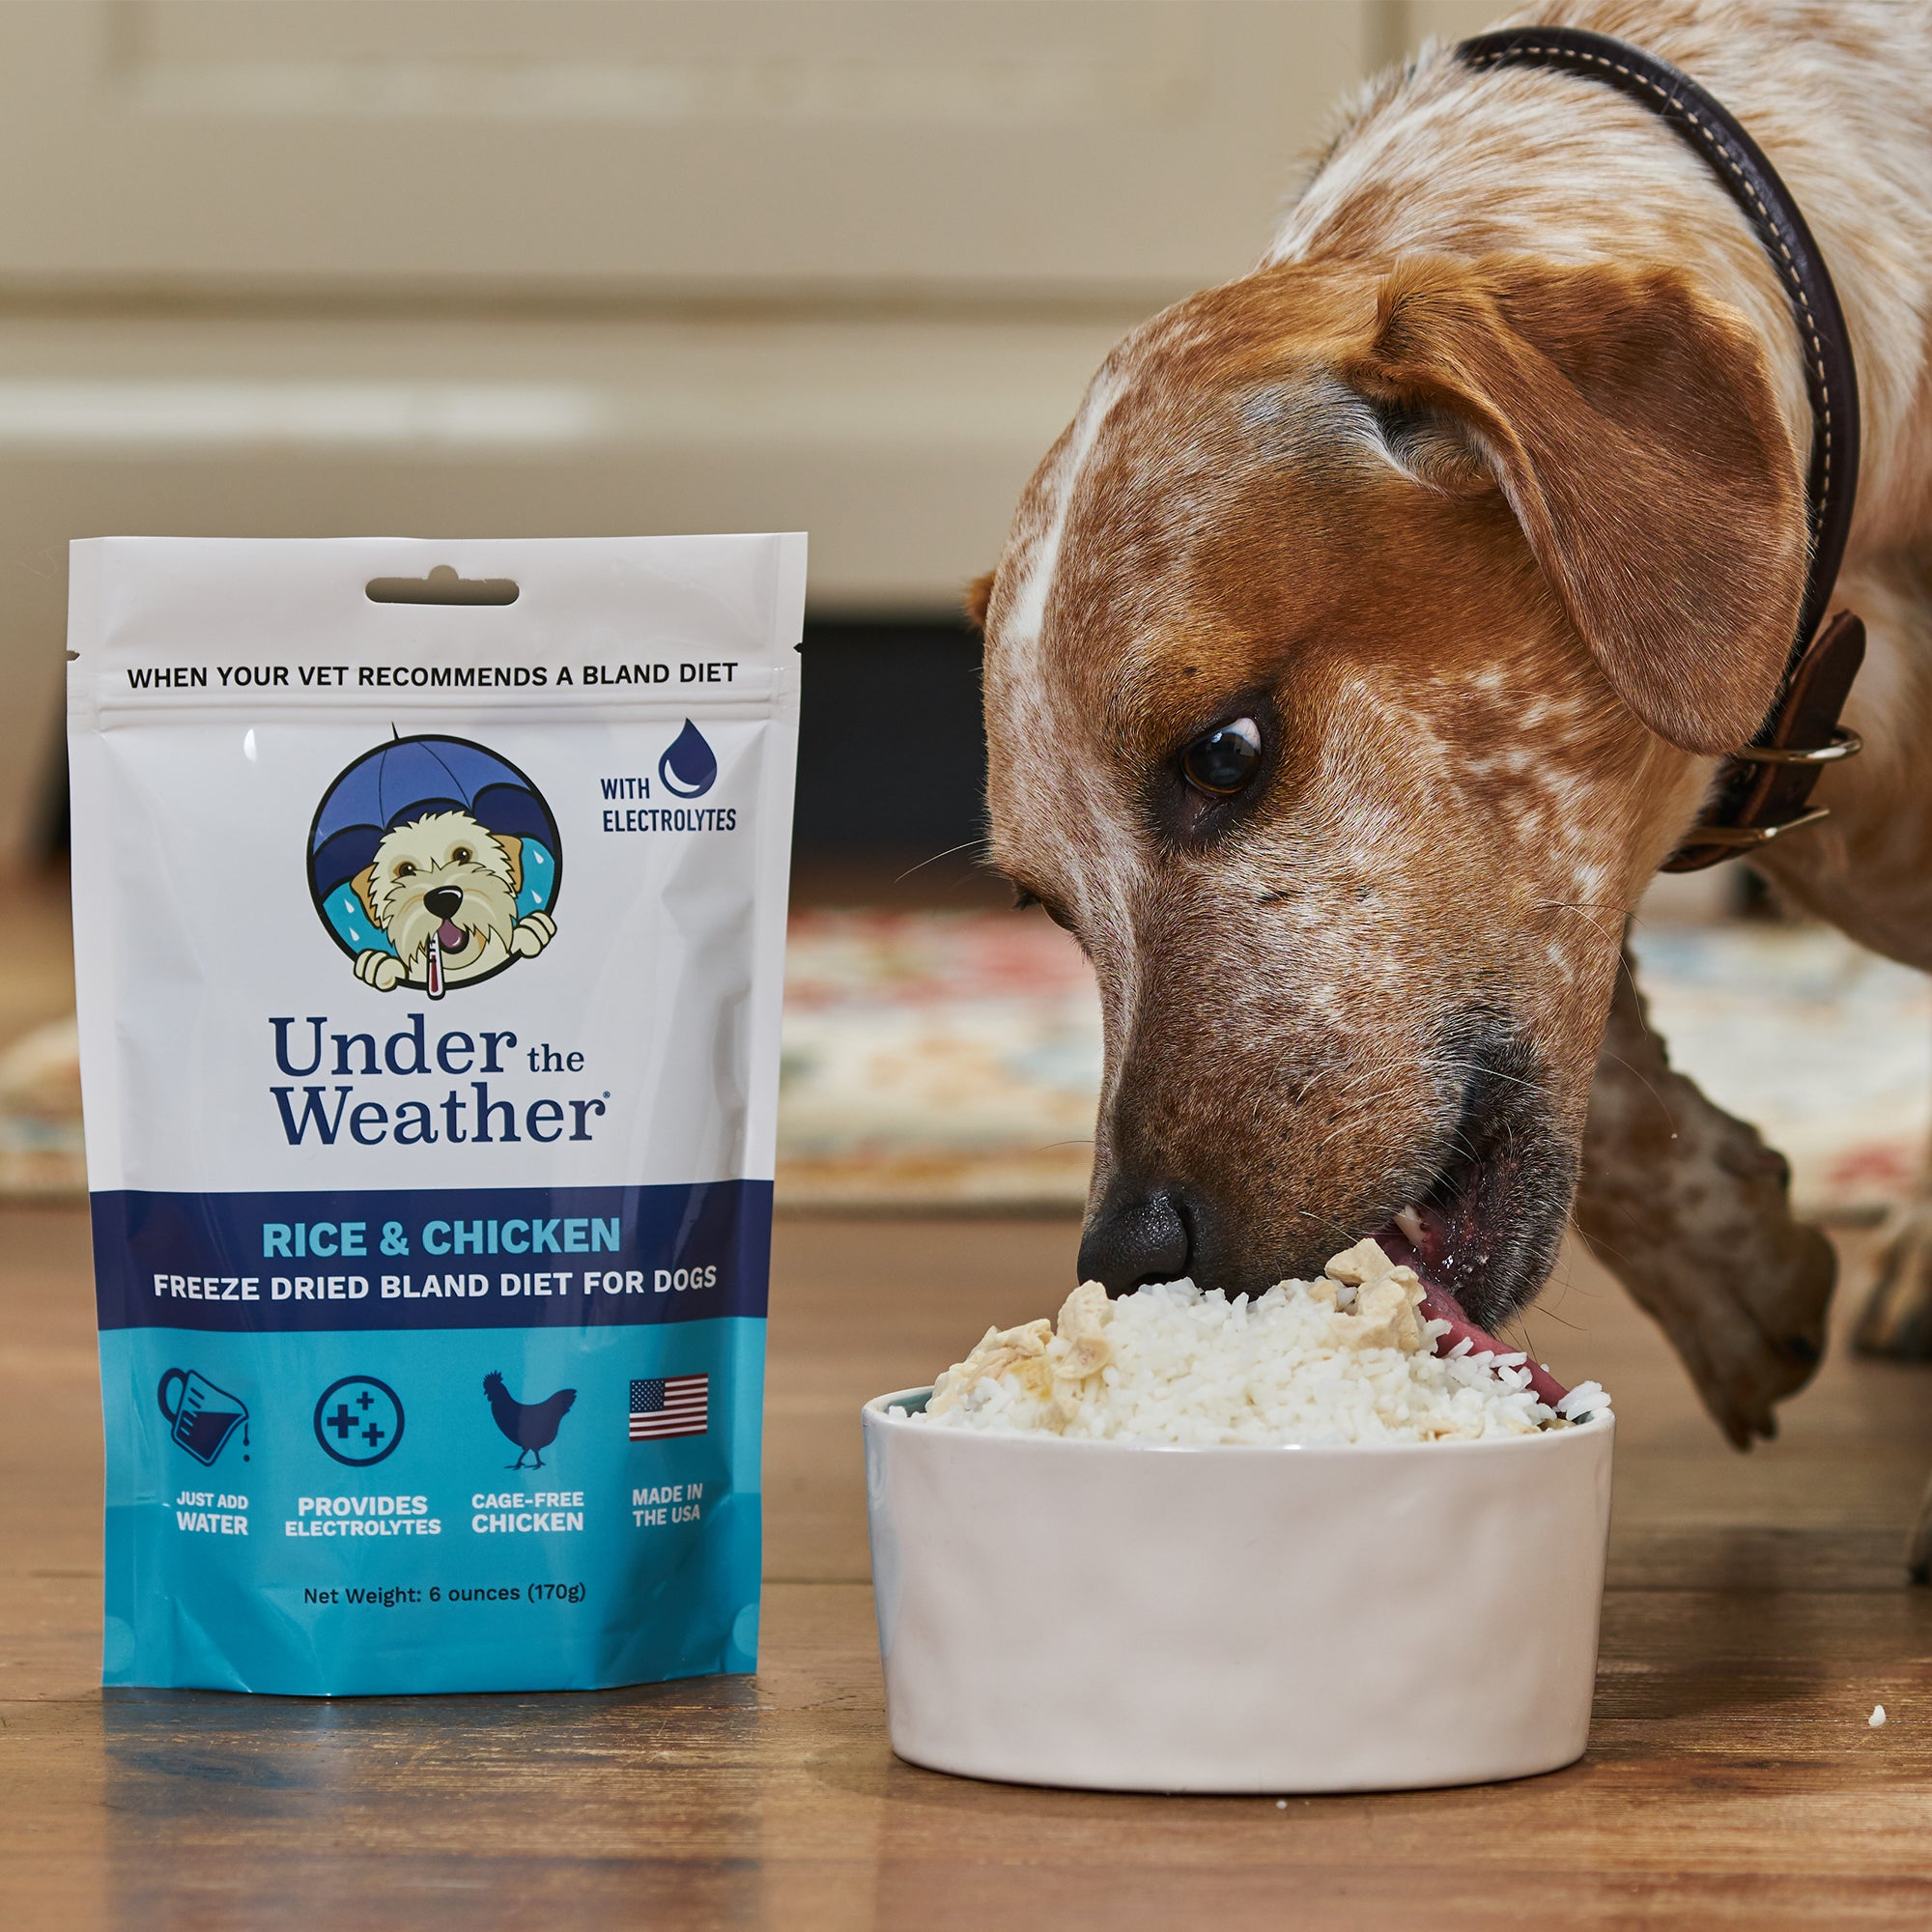 Chicken & Rice Bland Diet For Dogs